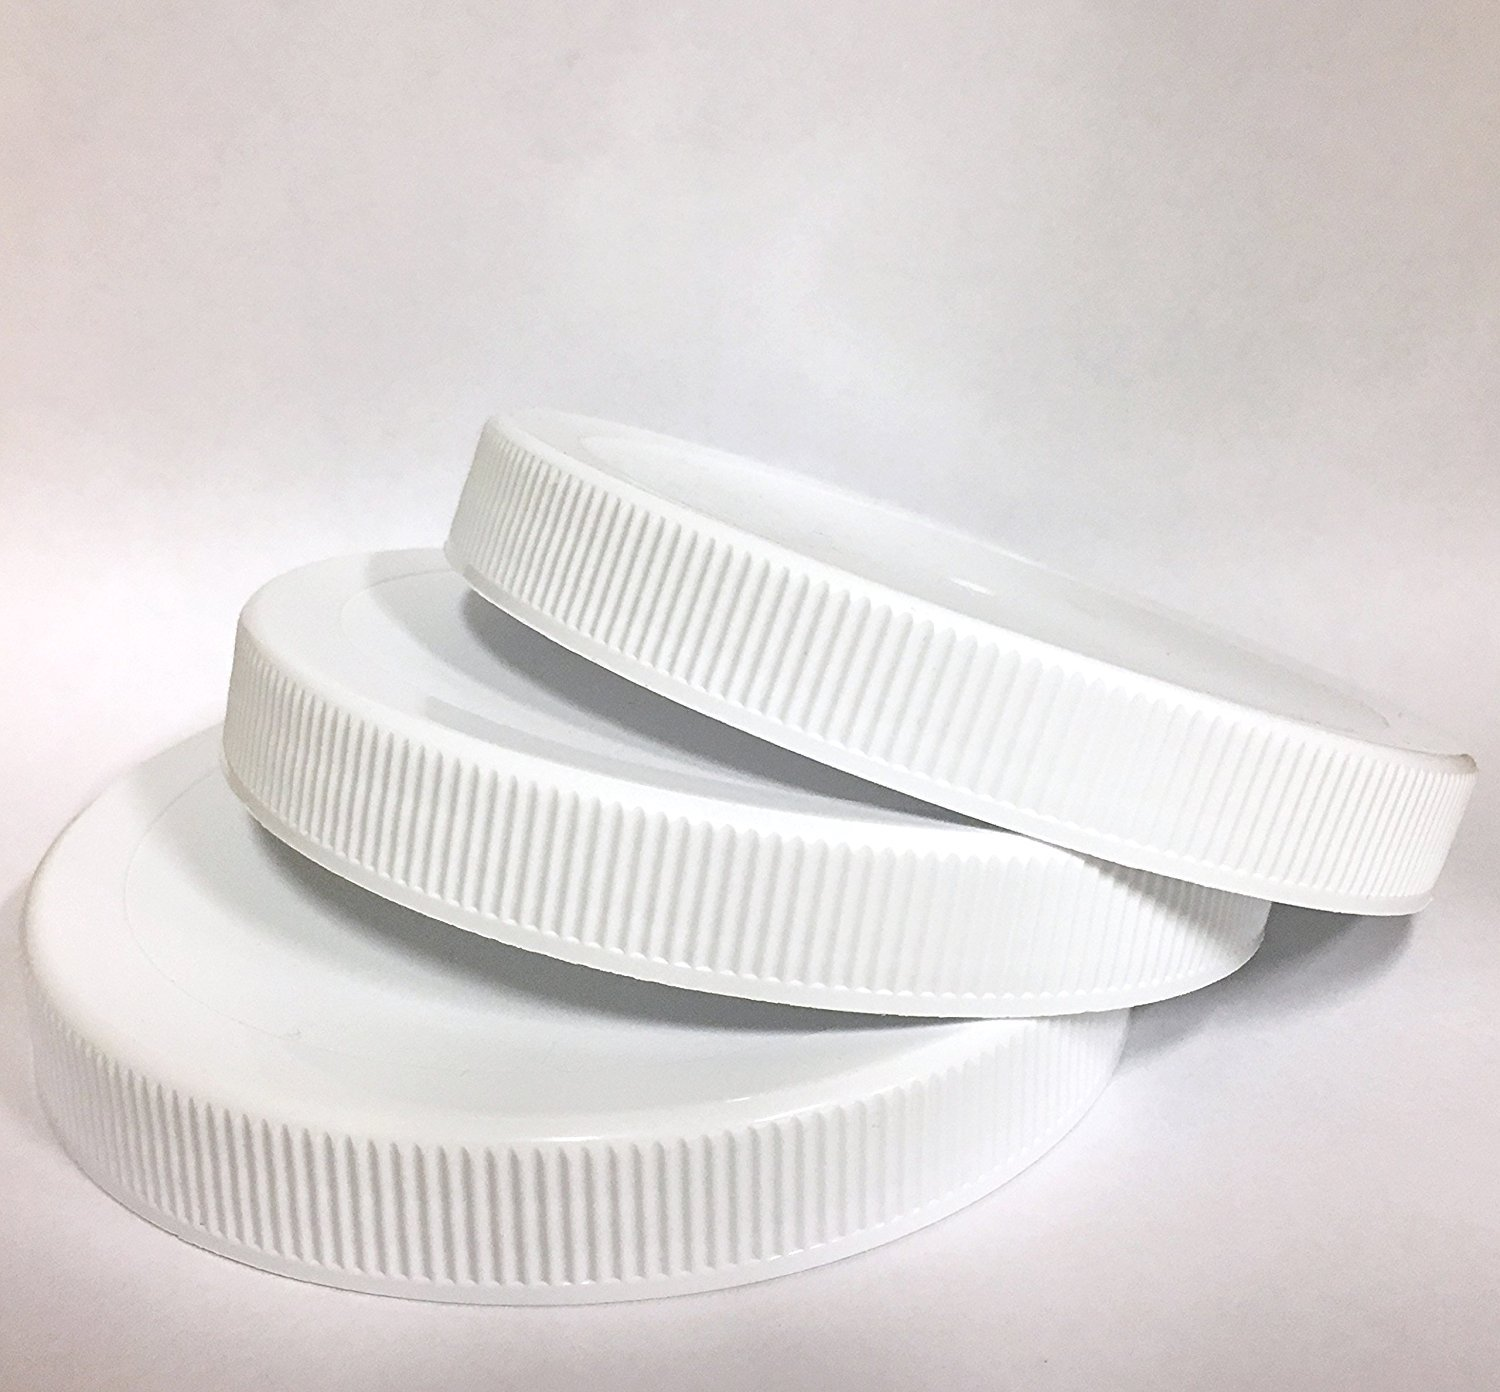 1 Gallon Fermentation Jar Replacement White Polypropylene Caps 110/400 (3, White Poly) HANNIBALS DINER 4.25